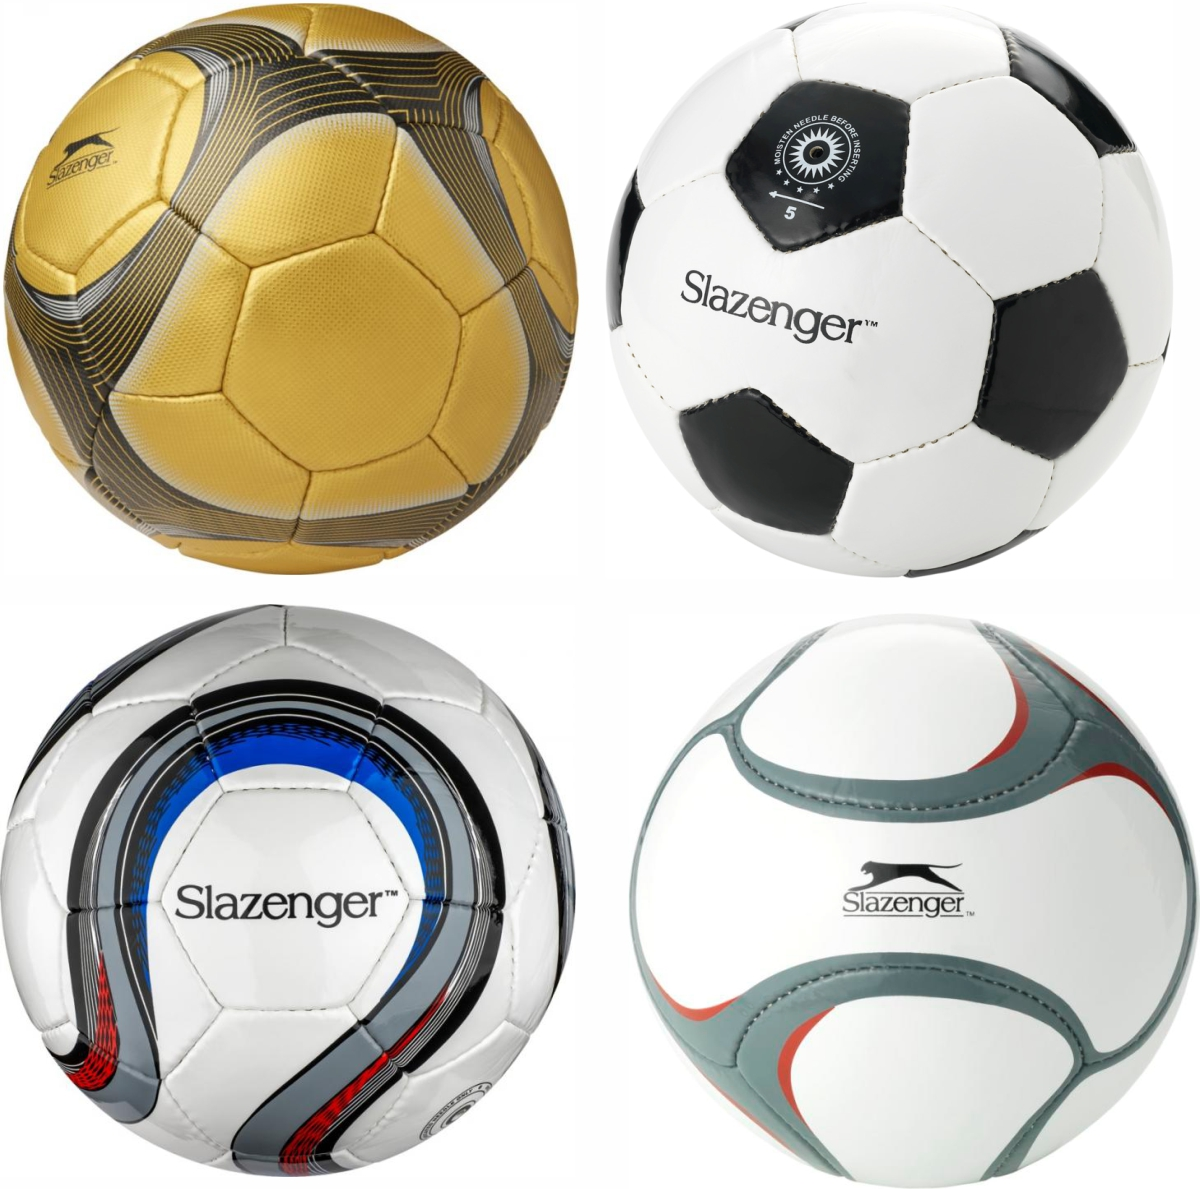 Slazenger Promotional Match Footballs as prizes